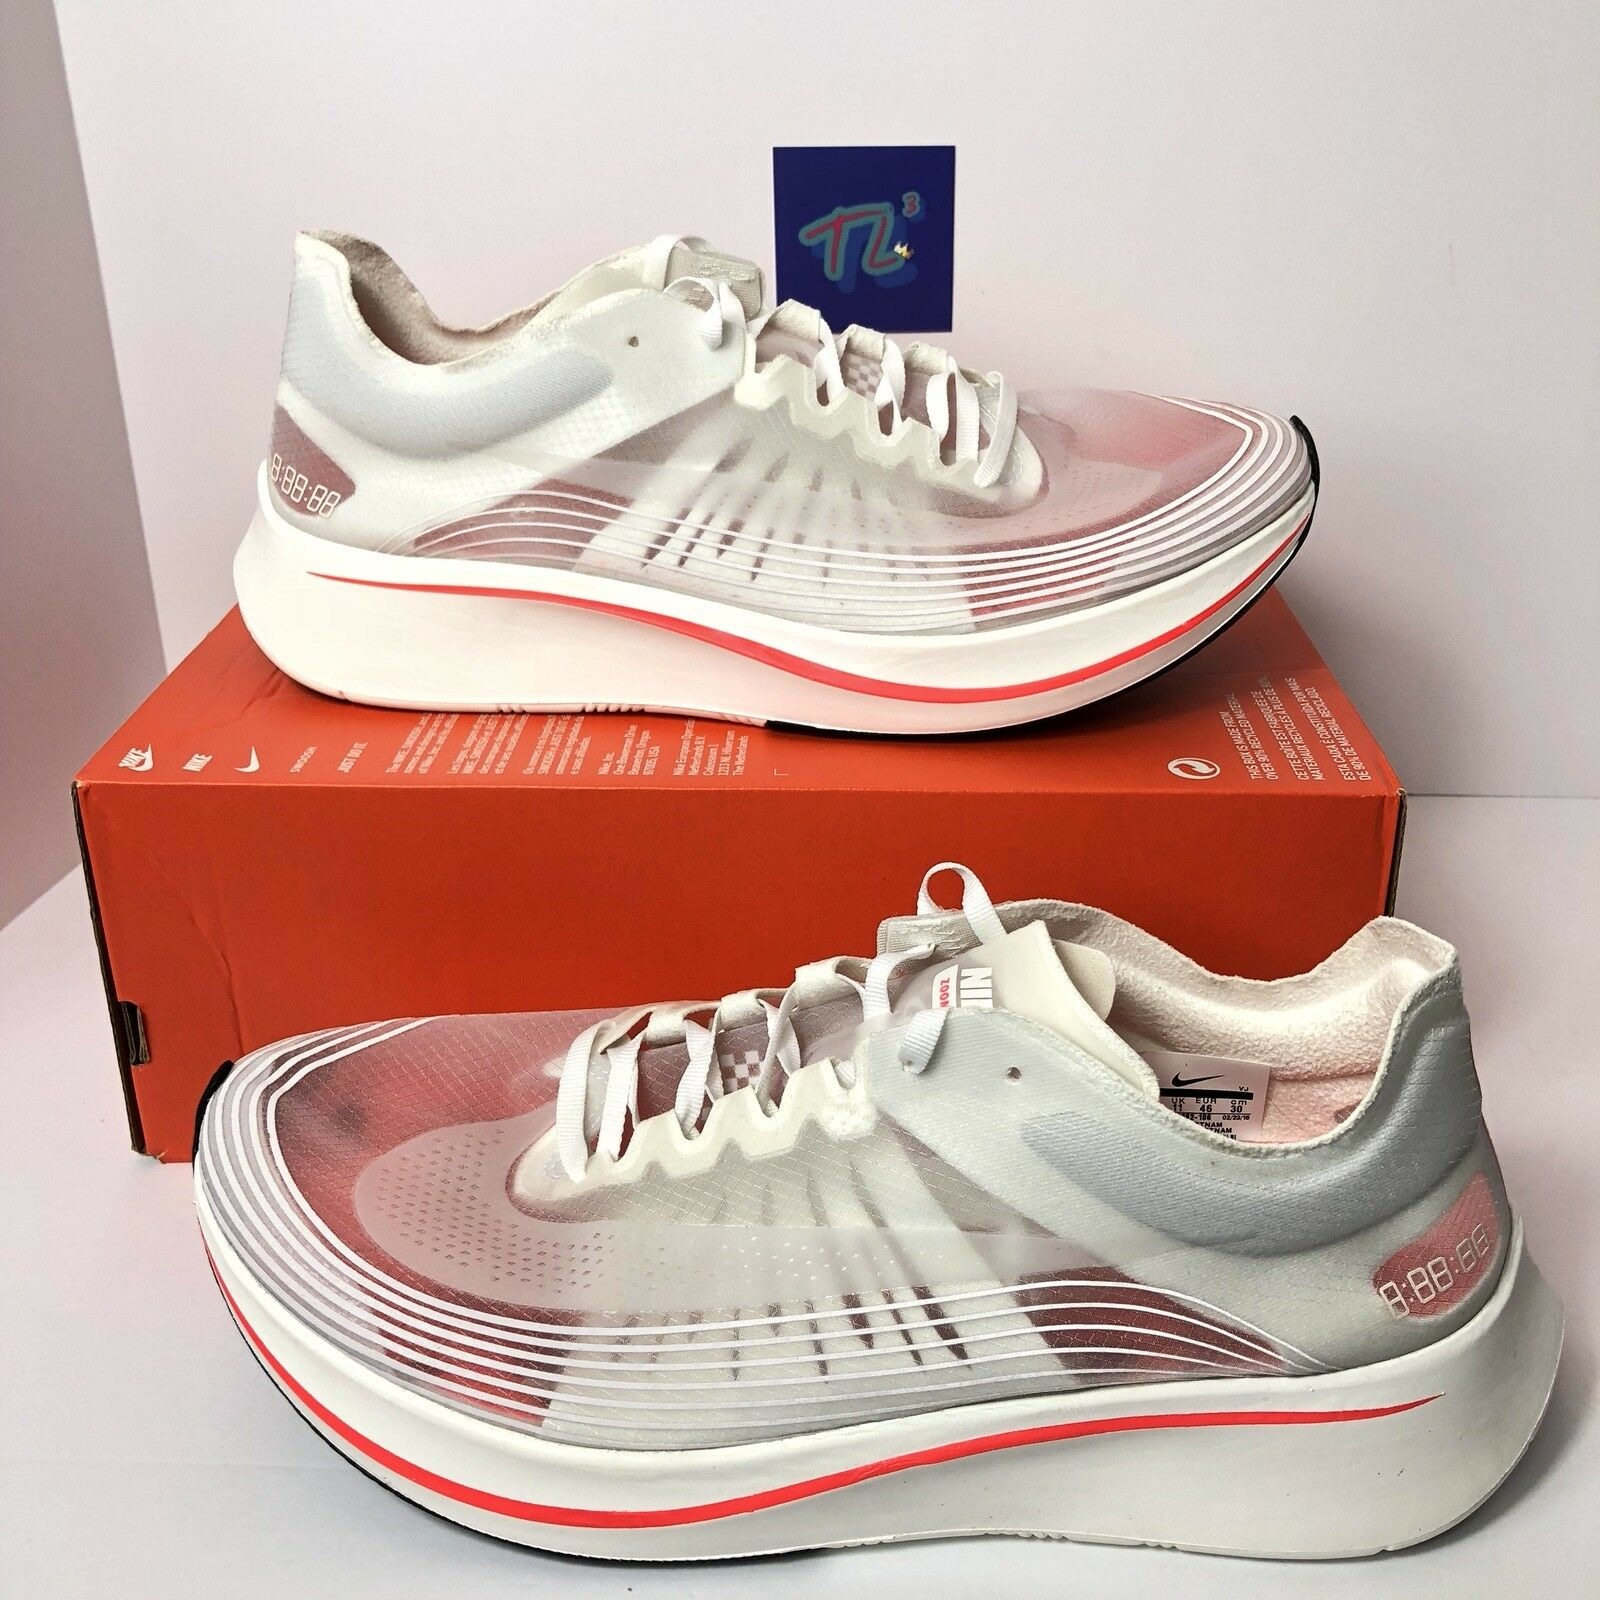 7e22b60300 Men's Zoom Fly SP Breaking 2 AJ9282-106 11.5 White Crimson W Dust Bag Sz  Nike ntrudb6133-Athletic Shoes